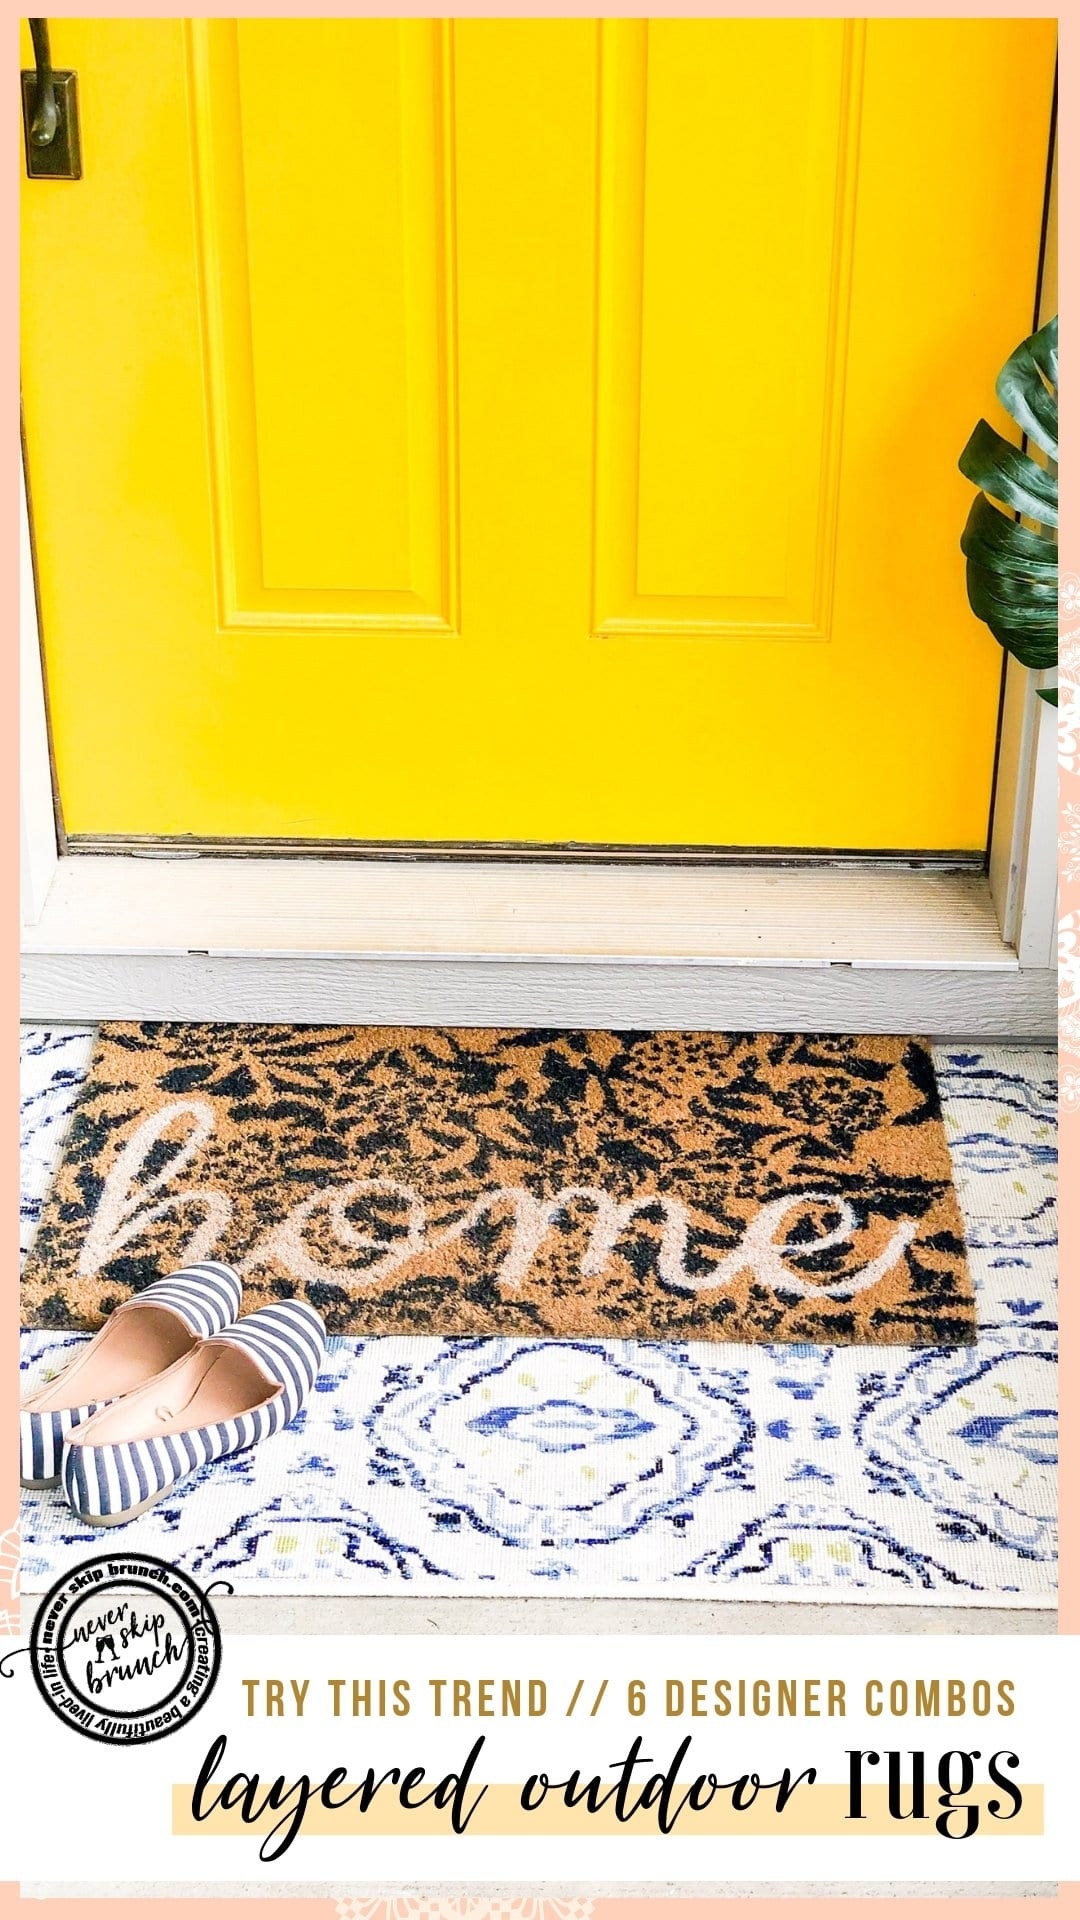 CUTE!! Loving this trend | layered rugs front door | layered rugs | patio decor | front porch decor | decor ideas | summer decor | Never Skip Brunch by Cara Newhart #decor #home #patio #summer